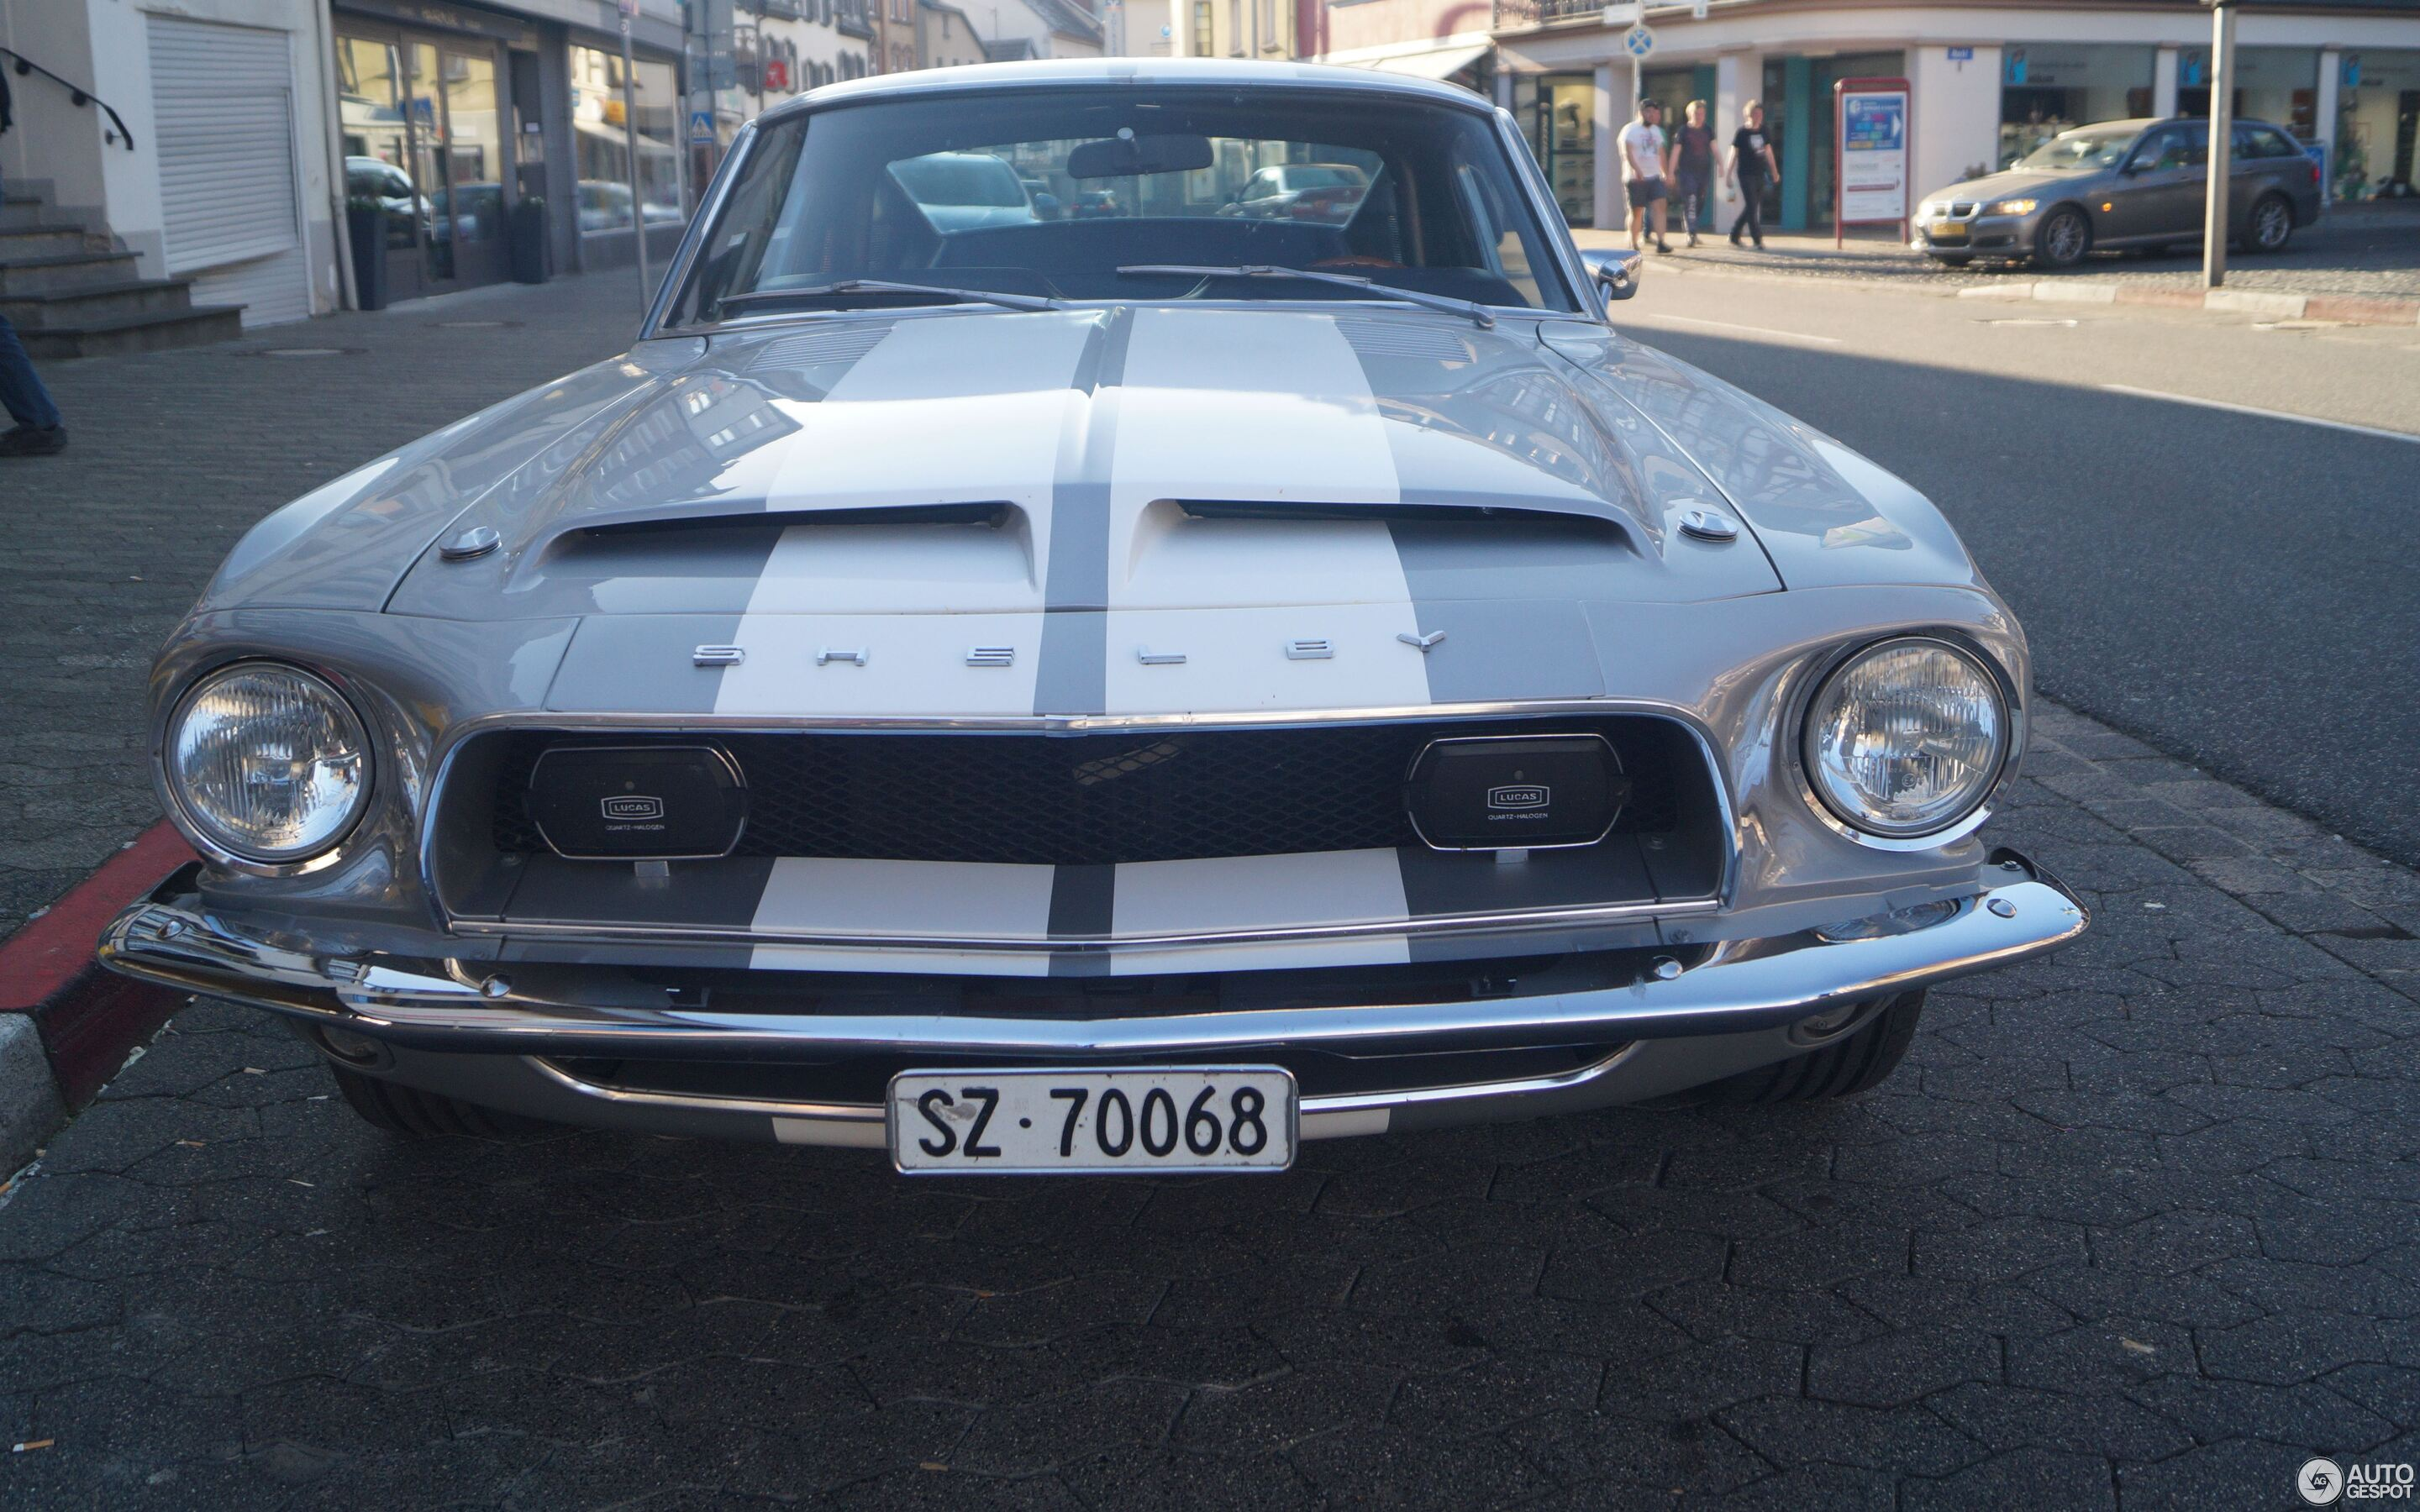 Ford Mustang Shelby G.T. 350